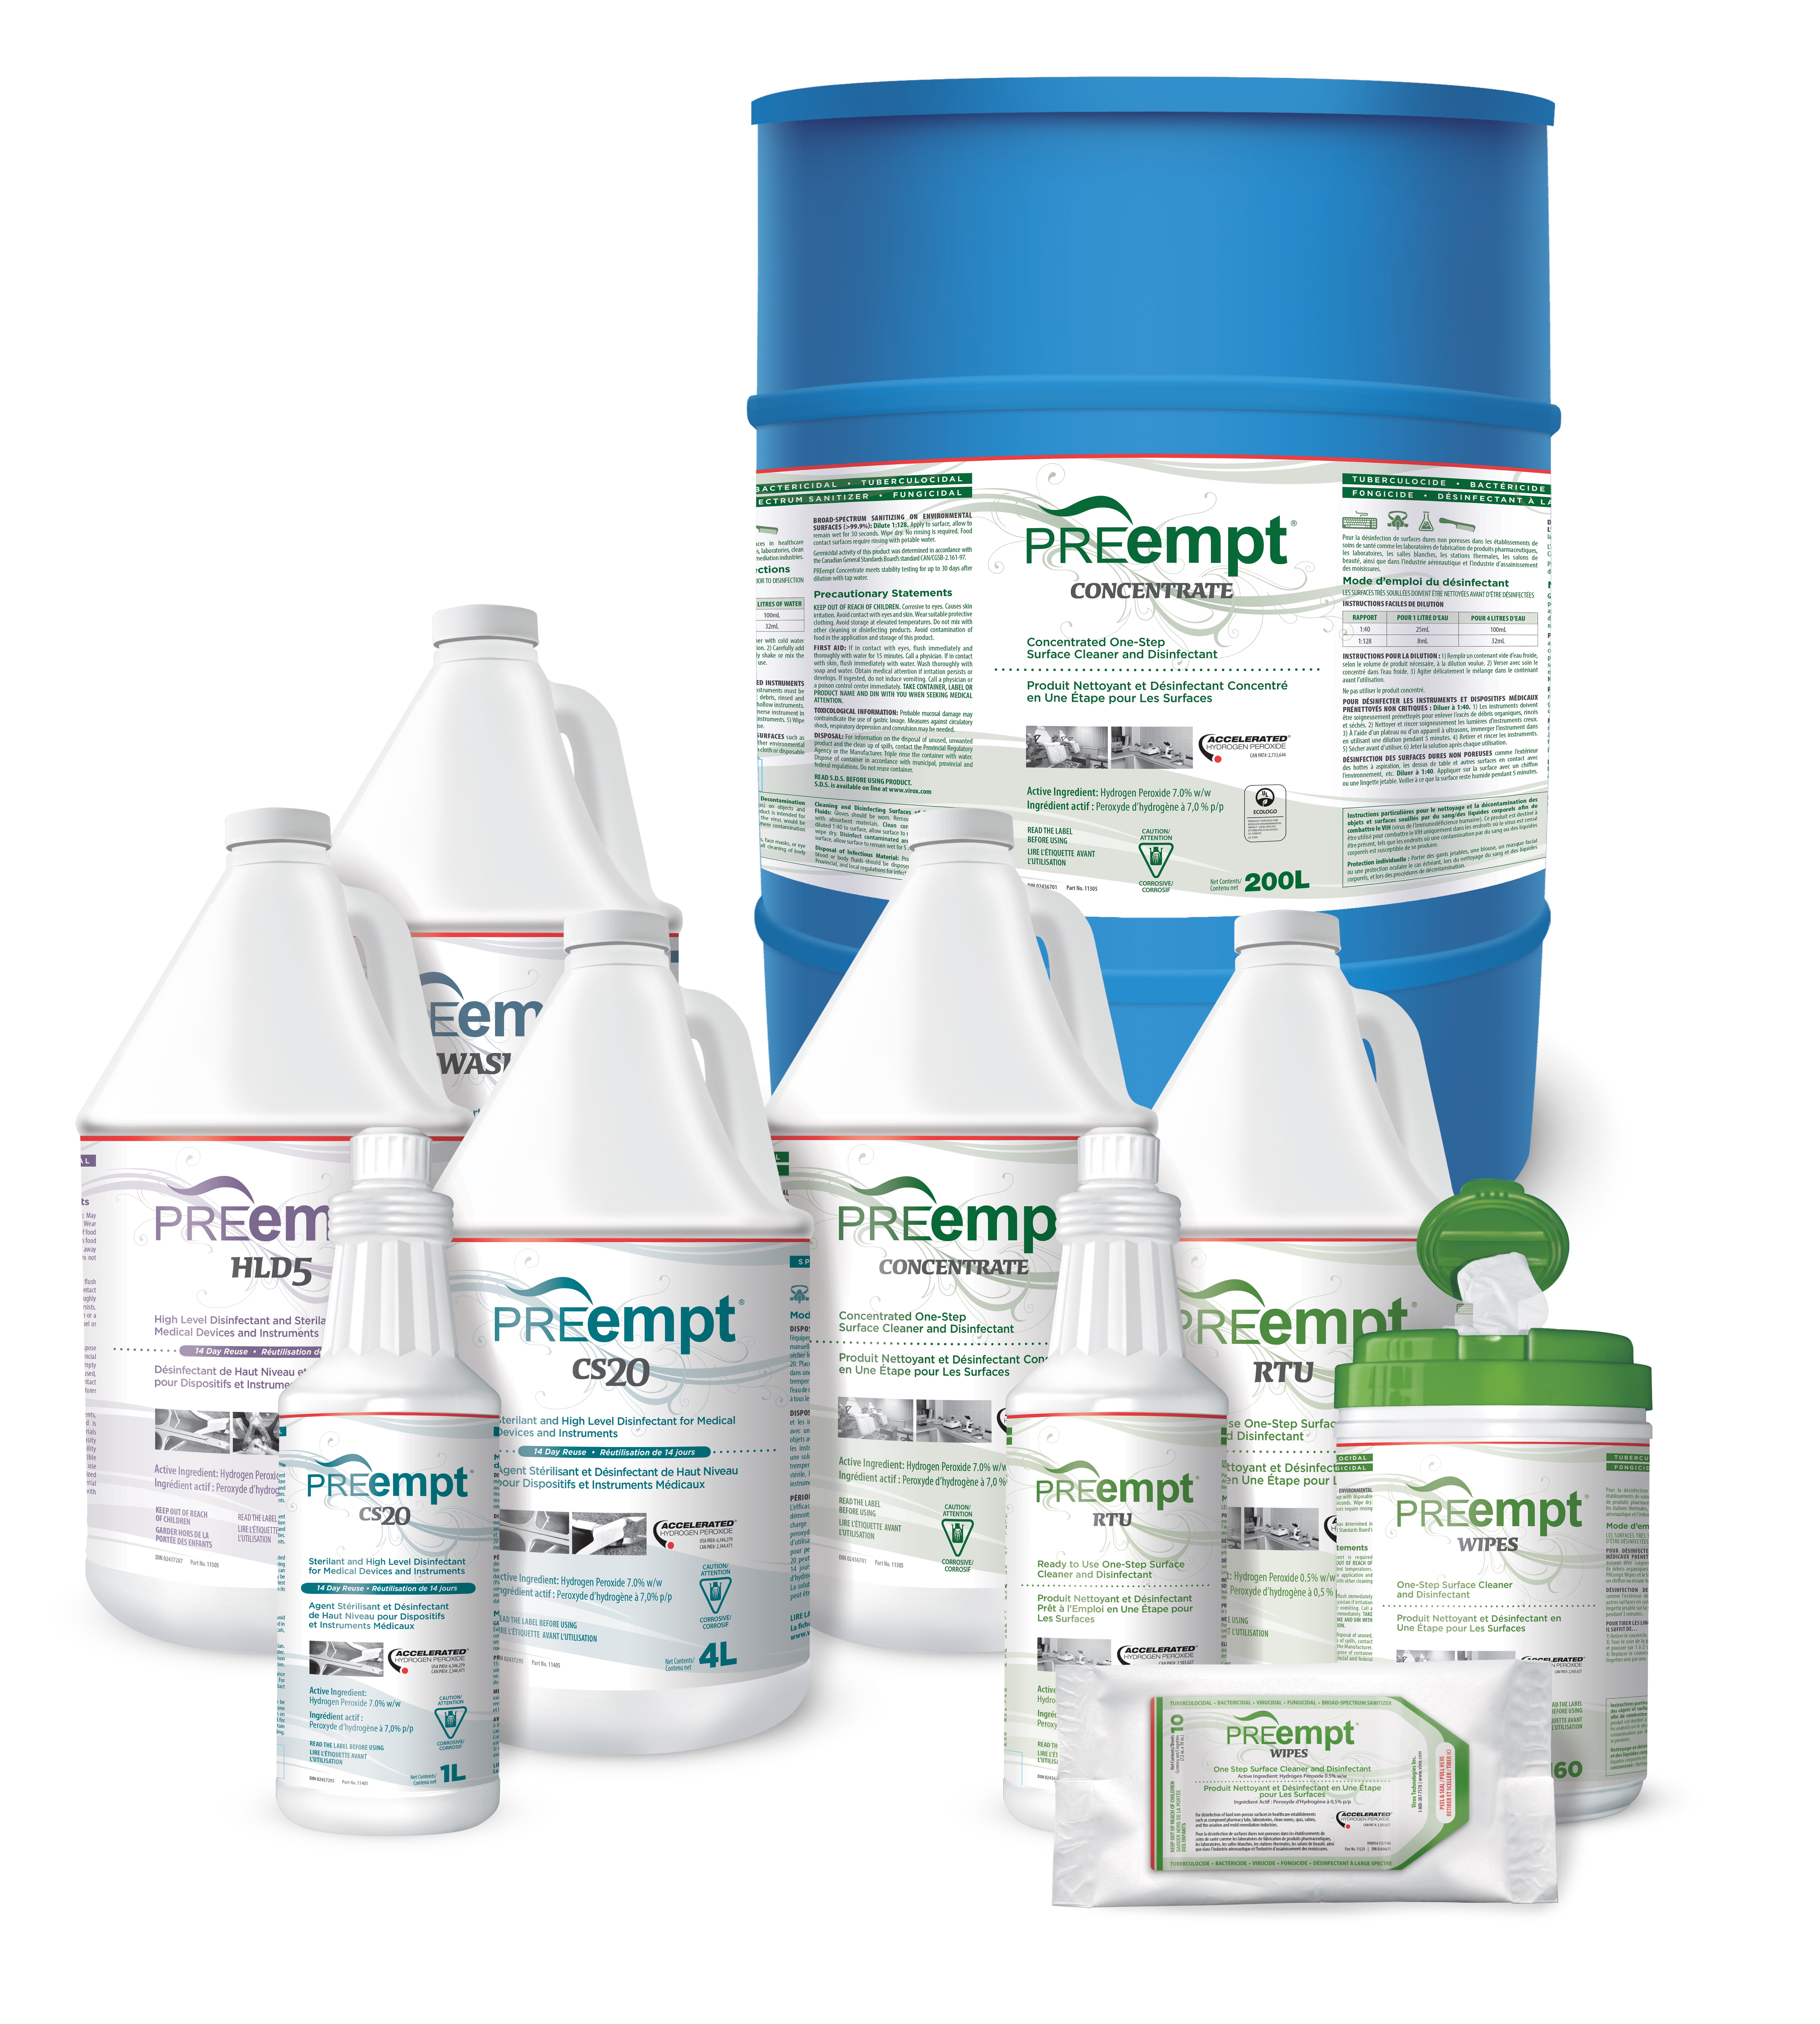 Preempt-Family-CAN-Product-Image.jpg